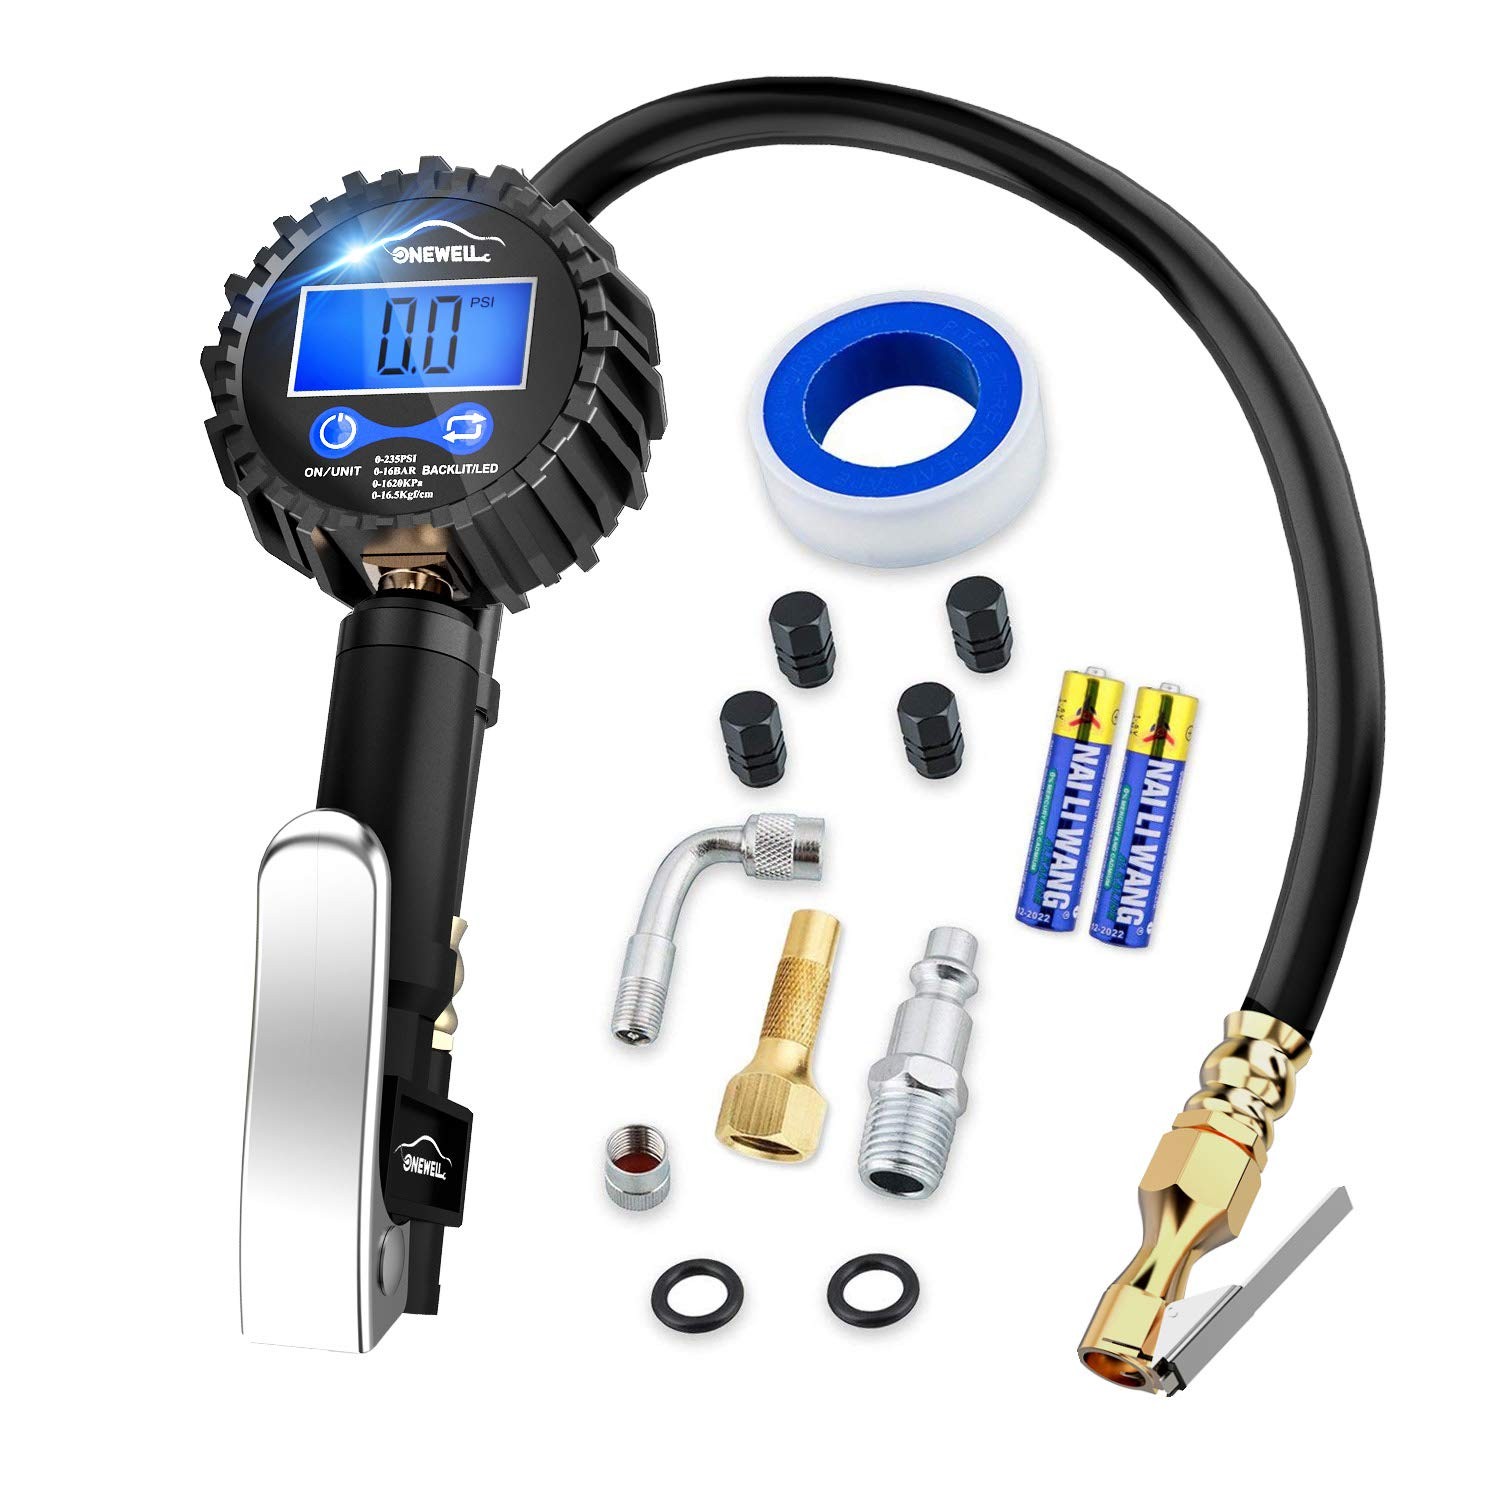 Digital tire inflator with Pressure Gauge,Accurate 0.1 Display Resolution 235Psi Heavy Duty Air Chuck and Compressor Accessories with Rubber Hose and Quick Connect Plug for Truck,Cars and Motorcycle